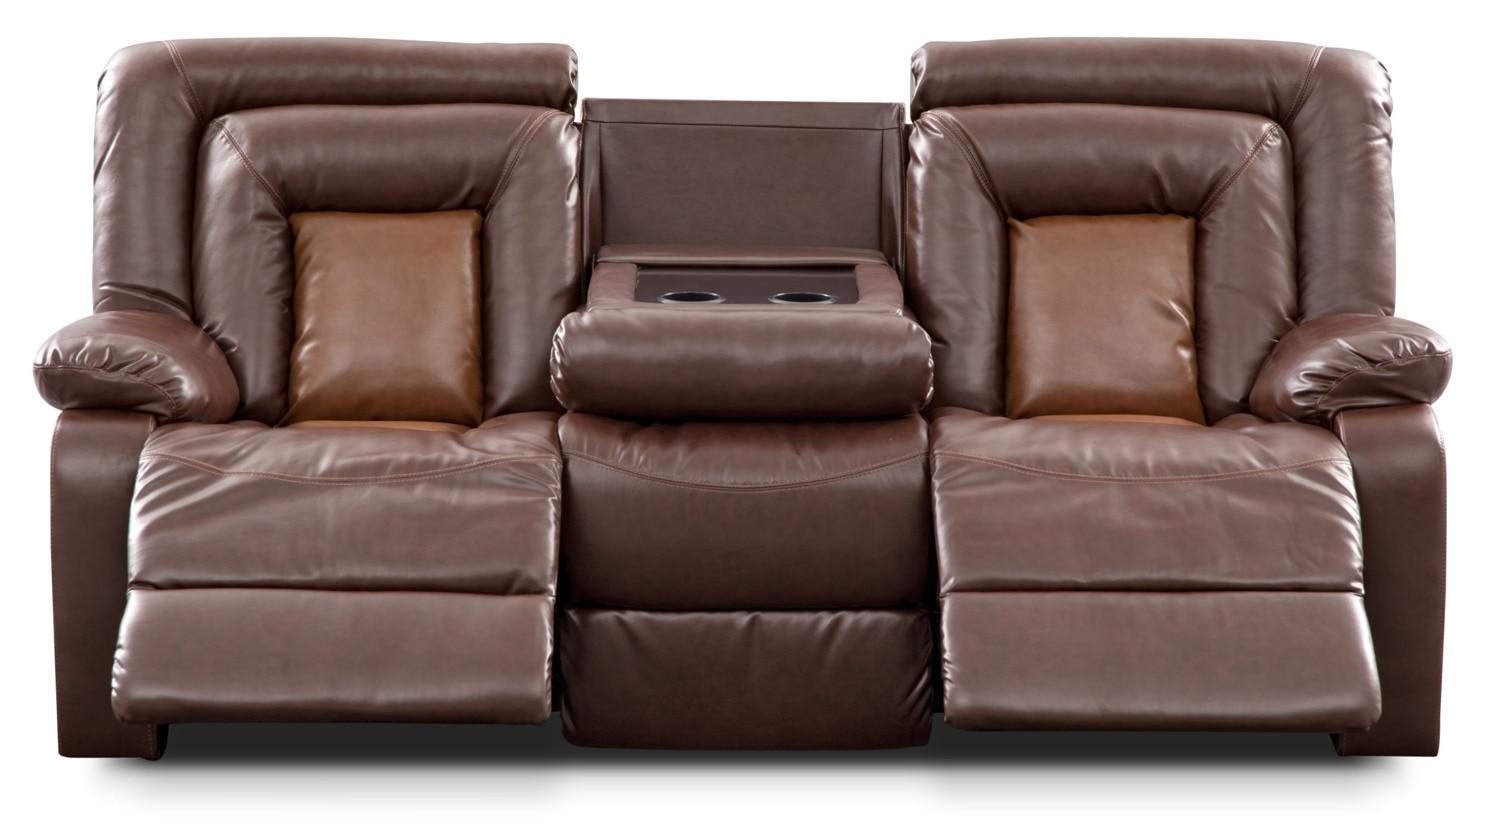 Sofas Center : Magnificent Recliningfa With Console Images Concept Inside Sofas With Consoles (Image 9 of 20)